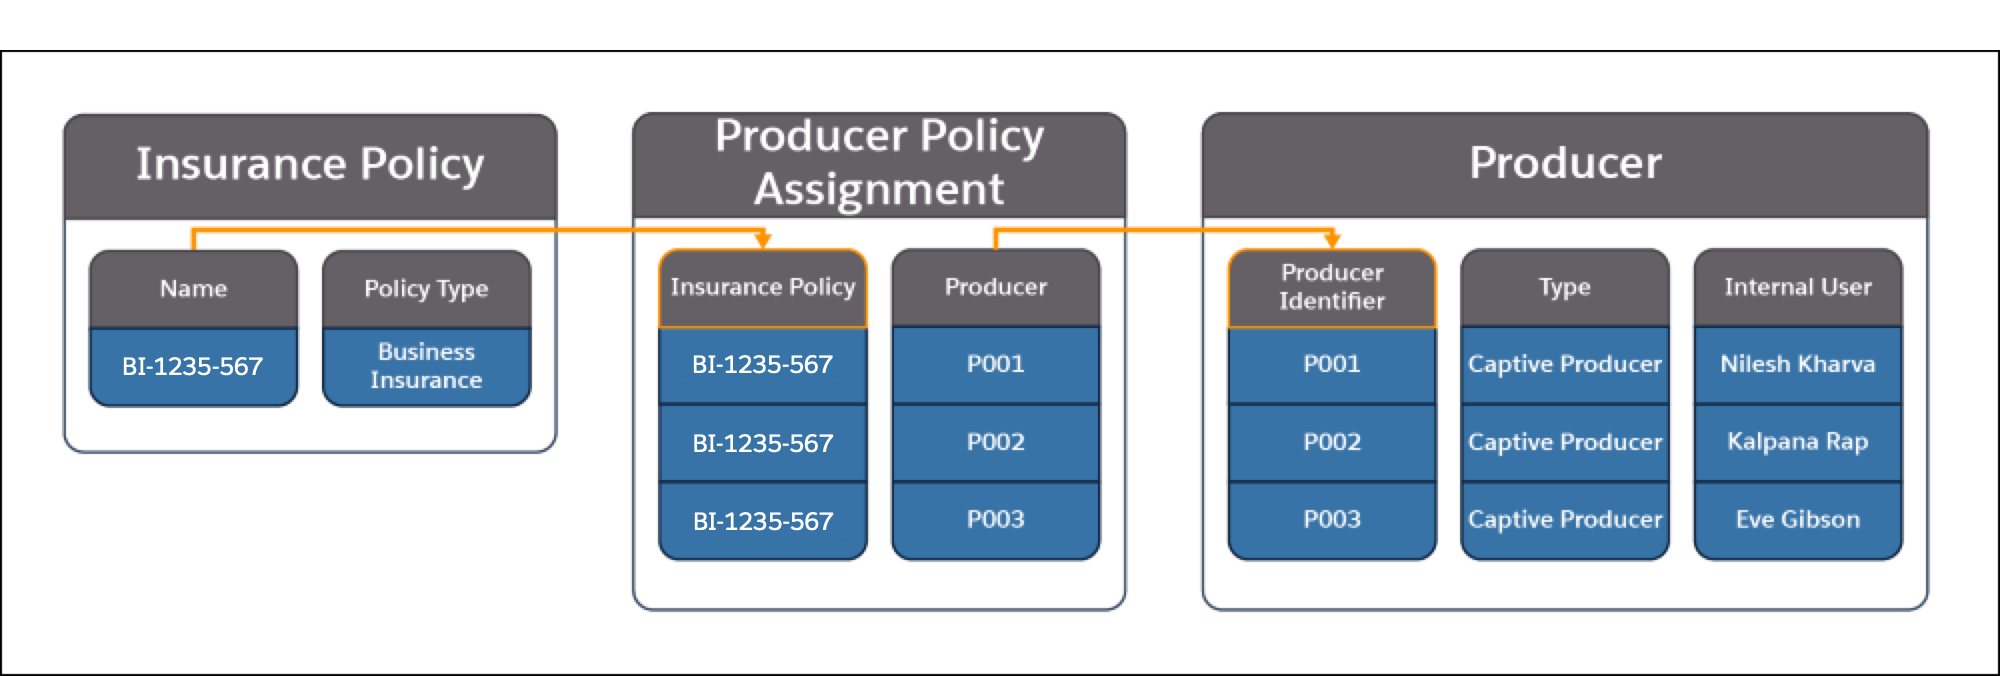 A picture showing the information contained in the Insurance Policy, Producer Policy Assignment, and Producer objects and how they relate to each other.